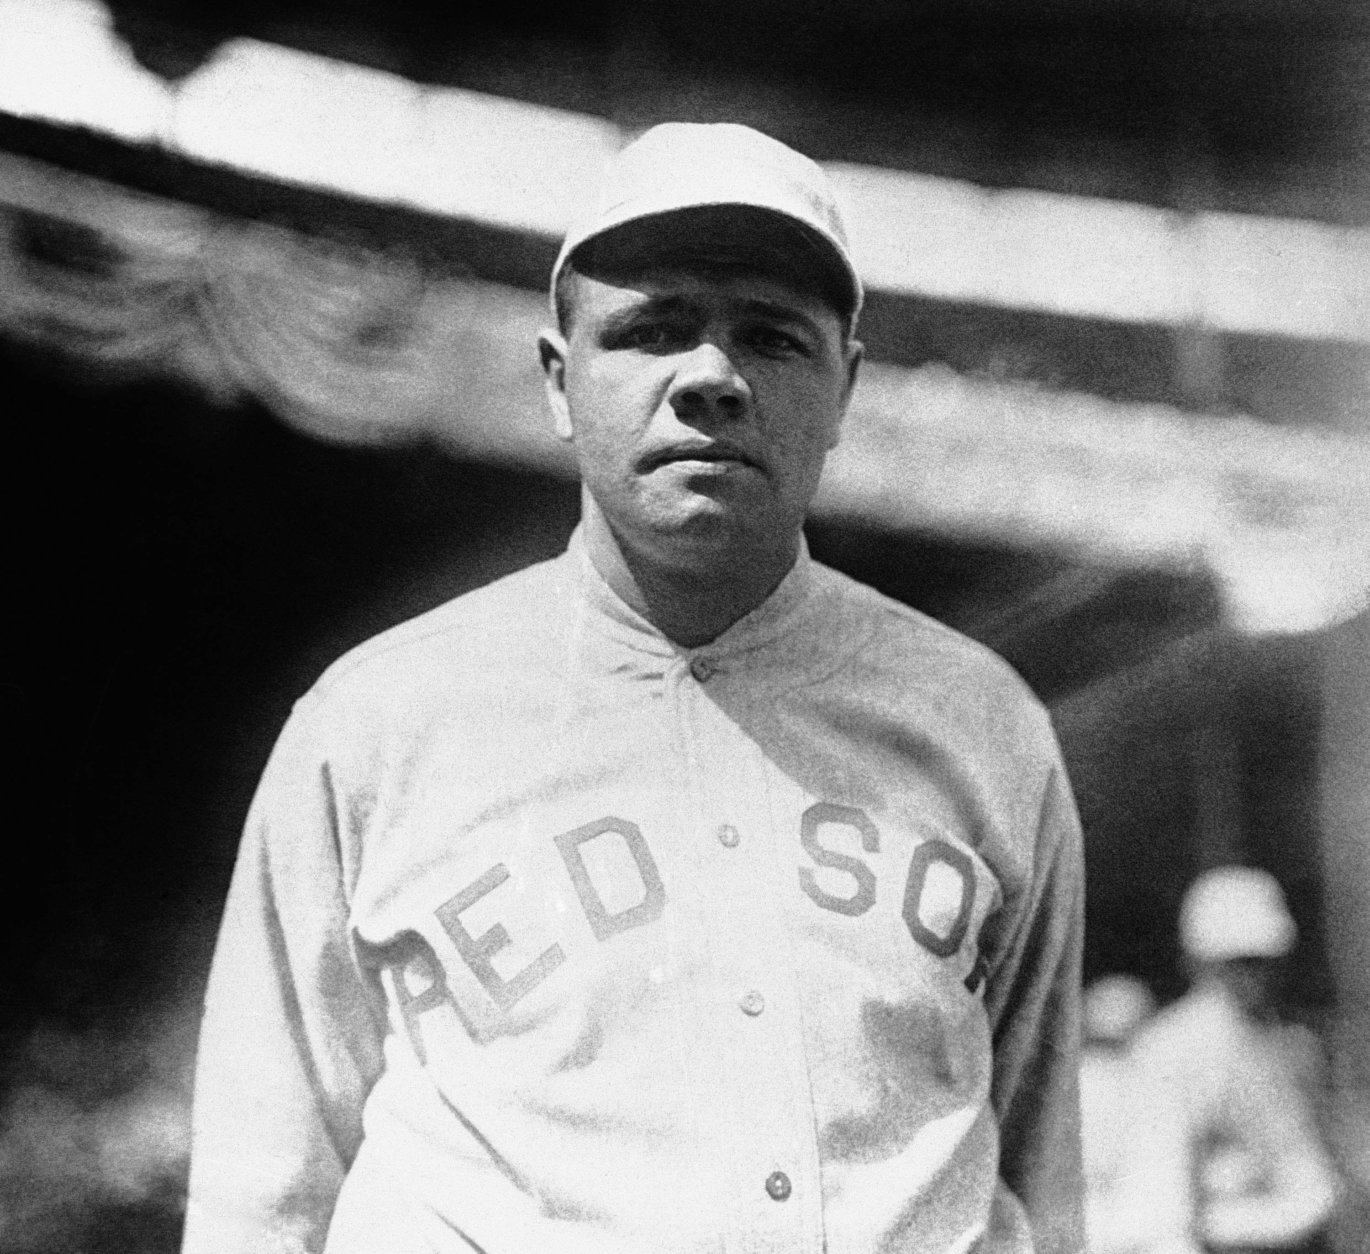 FILE - This 1919 file photo shows Boston Red Sox player Babe Ruth. Ruth played in the 1918 World Series against the Chicago Cubs that the Red Sox won 4-2.  In a 1920 court deposition on display at the Chicago History Museum by Chicago White Sox pitcher Eddie Cicotte,  one of the key members from the infamous 1919 Black Sox scandal, he hinted that the White Sox got the idea to throw the 1919 World Series after the Chicago Cubs threw the 1918 World Series. (AP Photo/File)